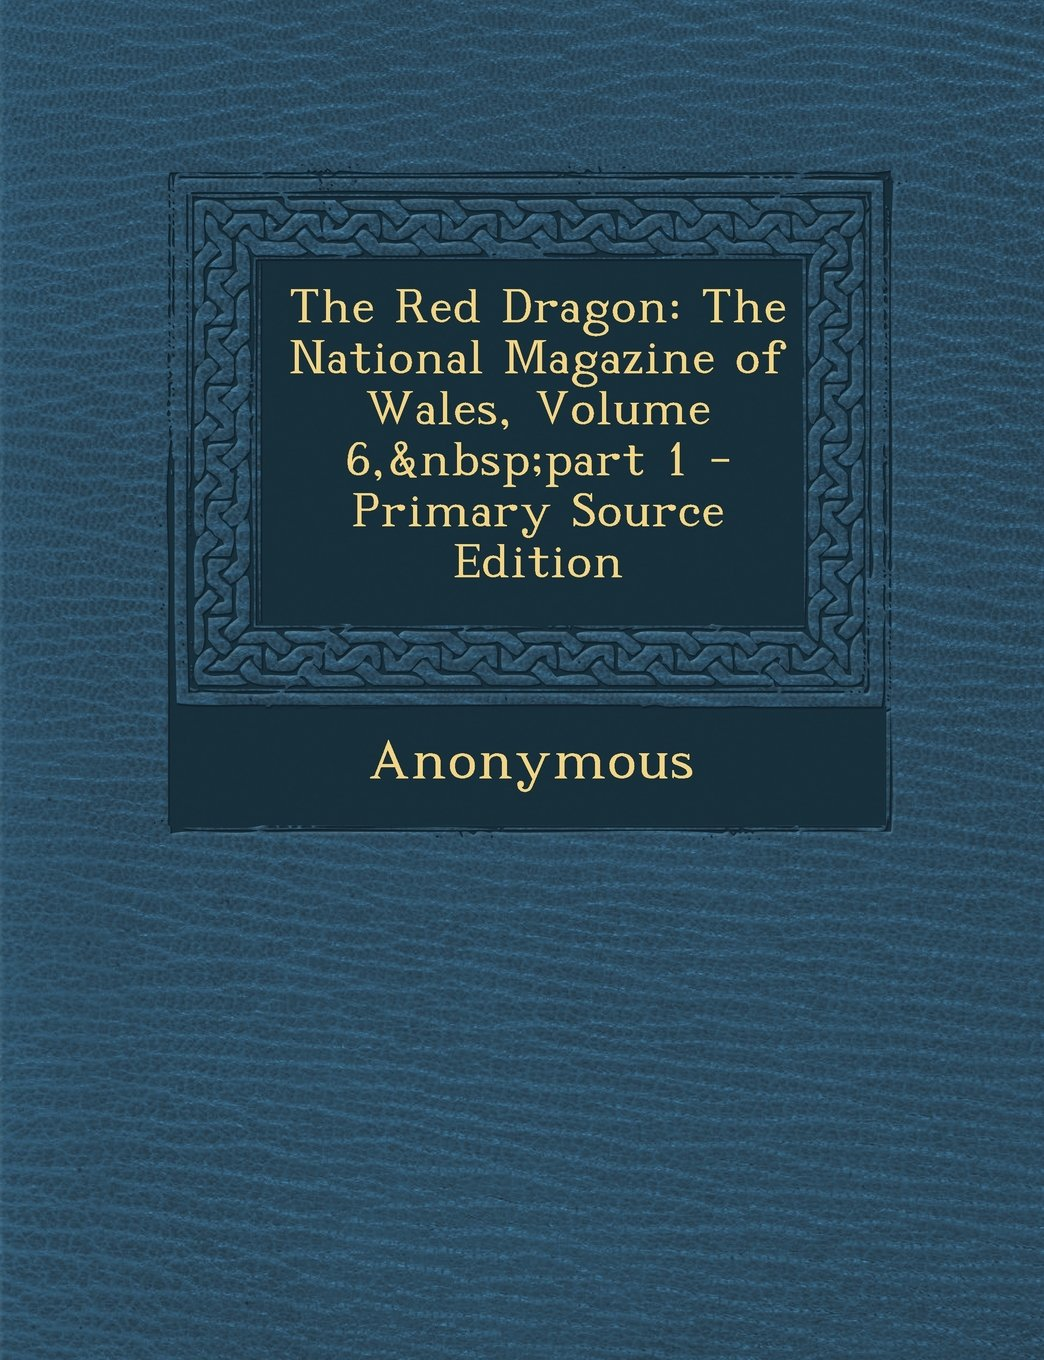 Read Online The Red Dragon: The National Magazine of Wales, Volume 6, part 1 - Primary Source Edition ebook